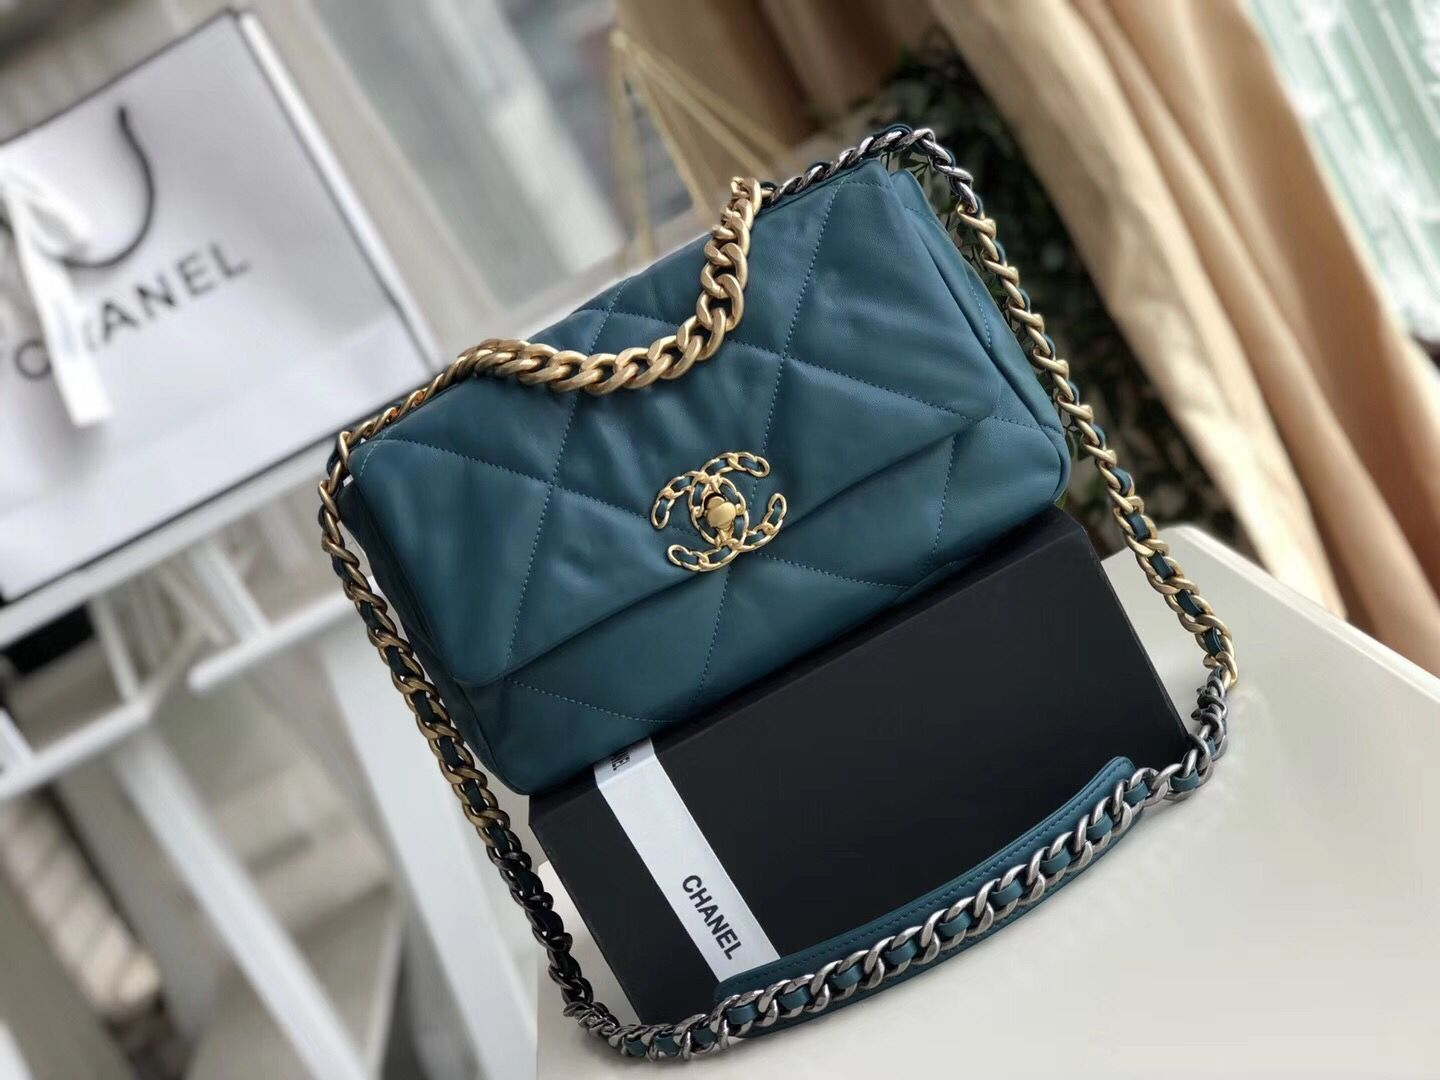 Chanel 19 flap bag AS1160 Navy